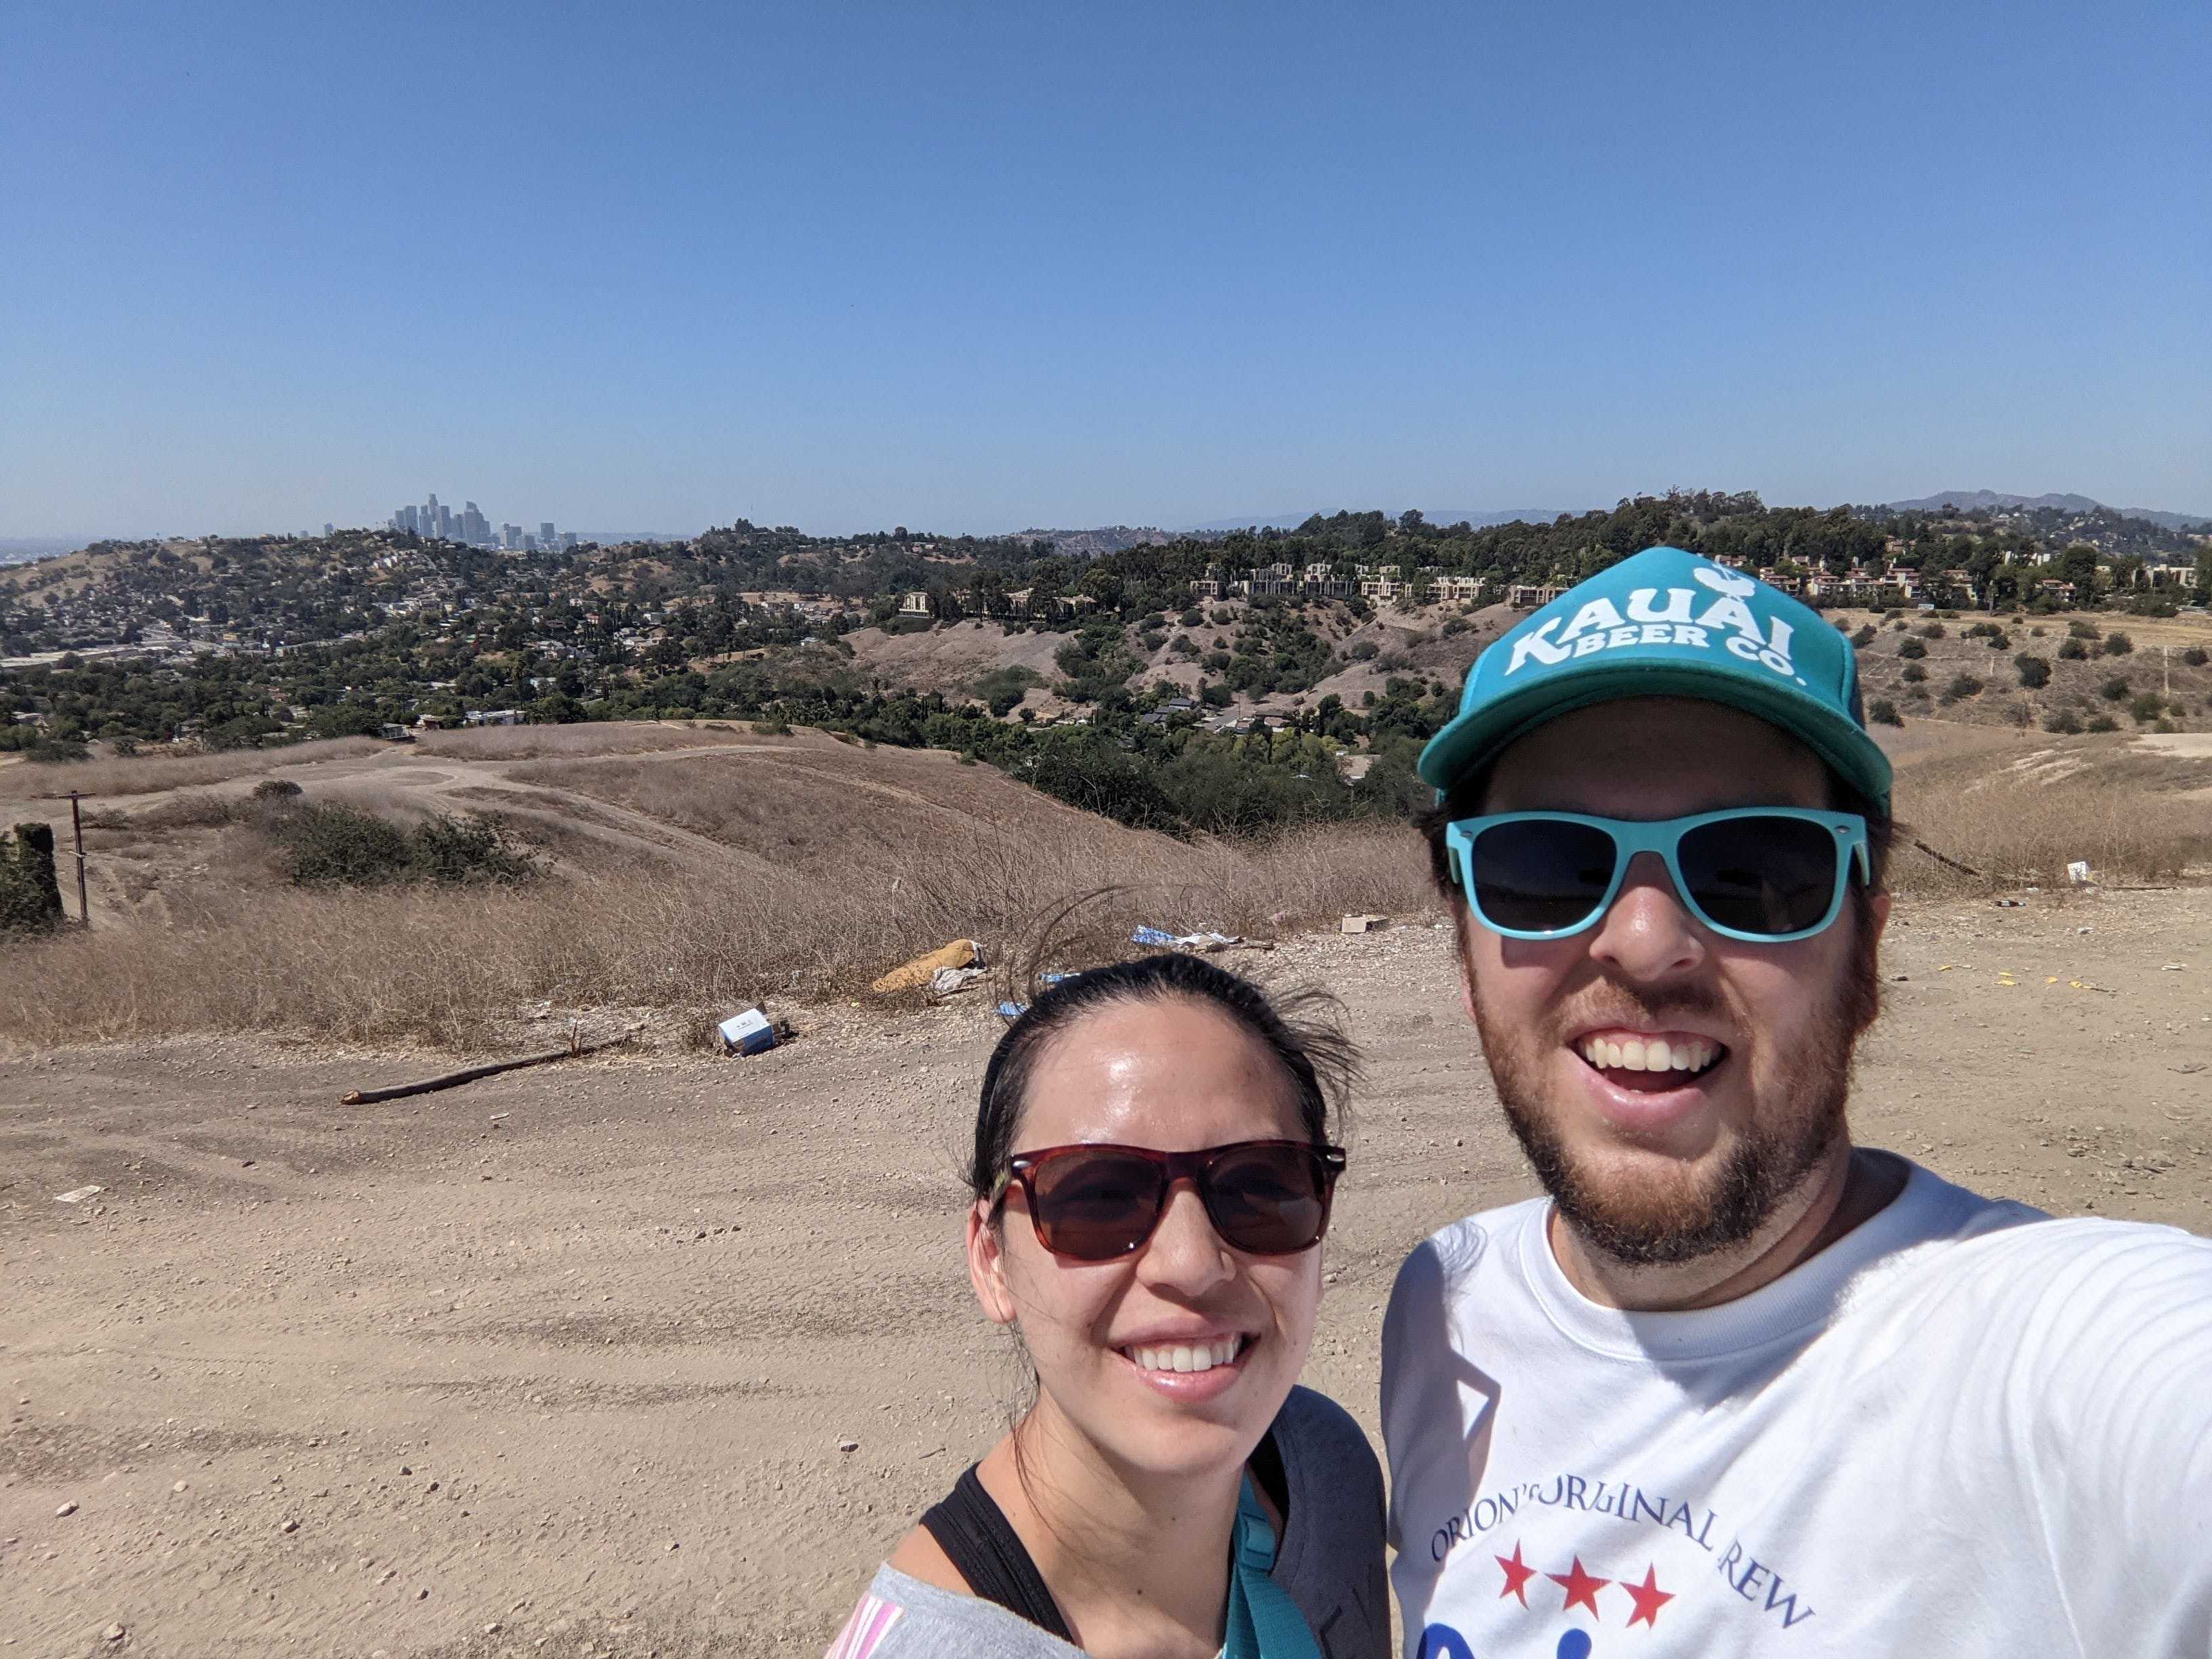 Selfie of a man and woman in sunglasses at Elephant Hill Open Space